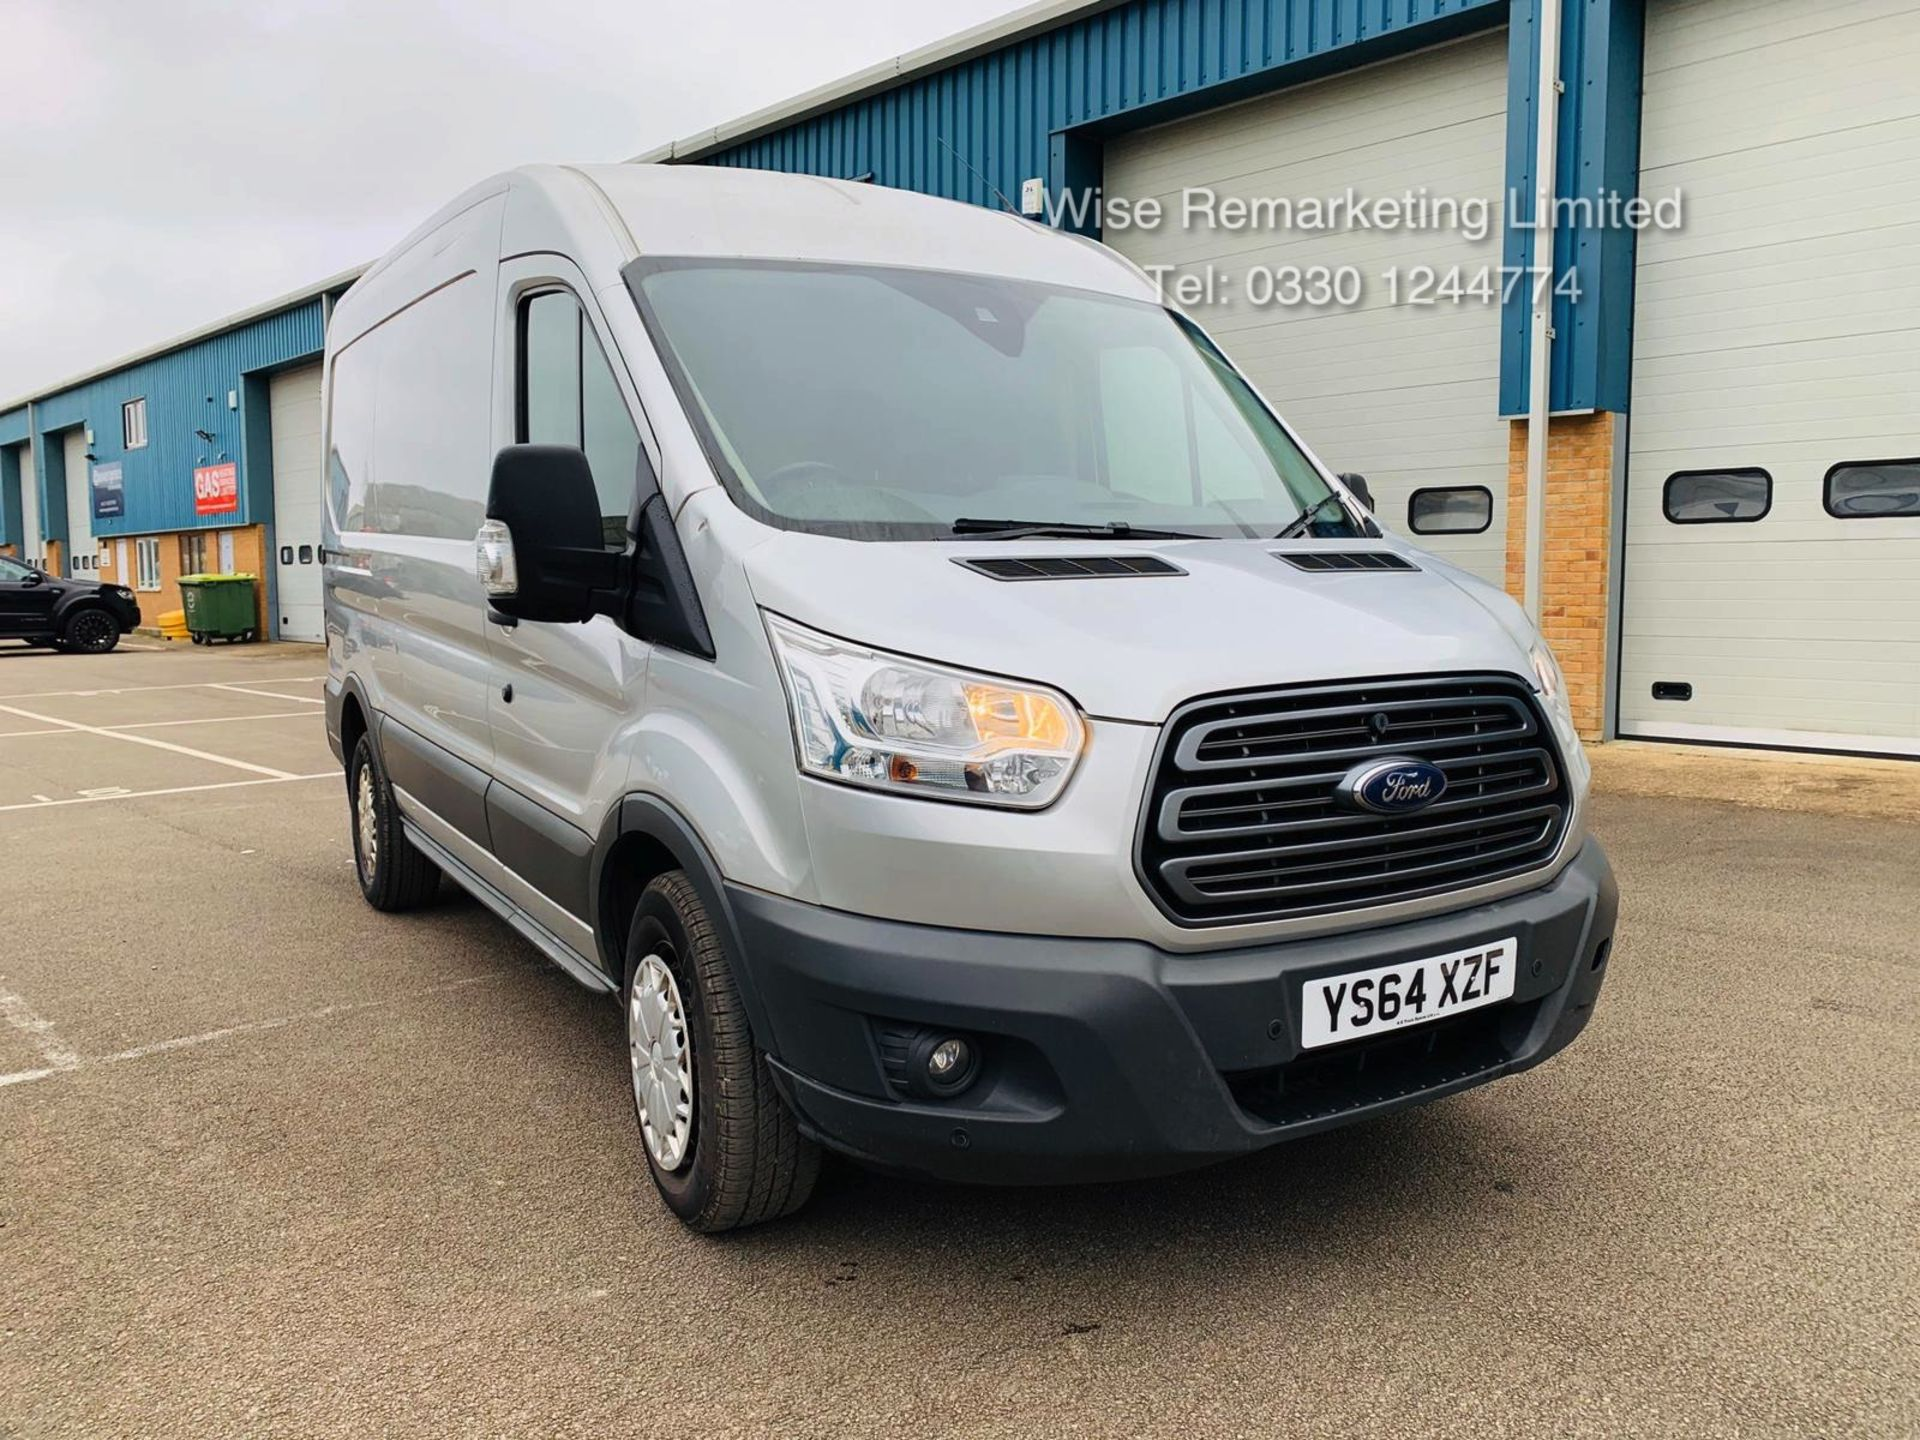 Lot 19 - Ford Transit 350 2.2 TDCI Trend Van - 2015 Reg - Silver - 6 Speed - Ply Lined